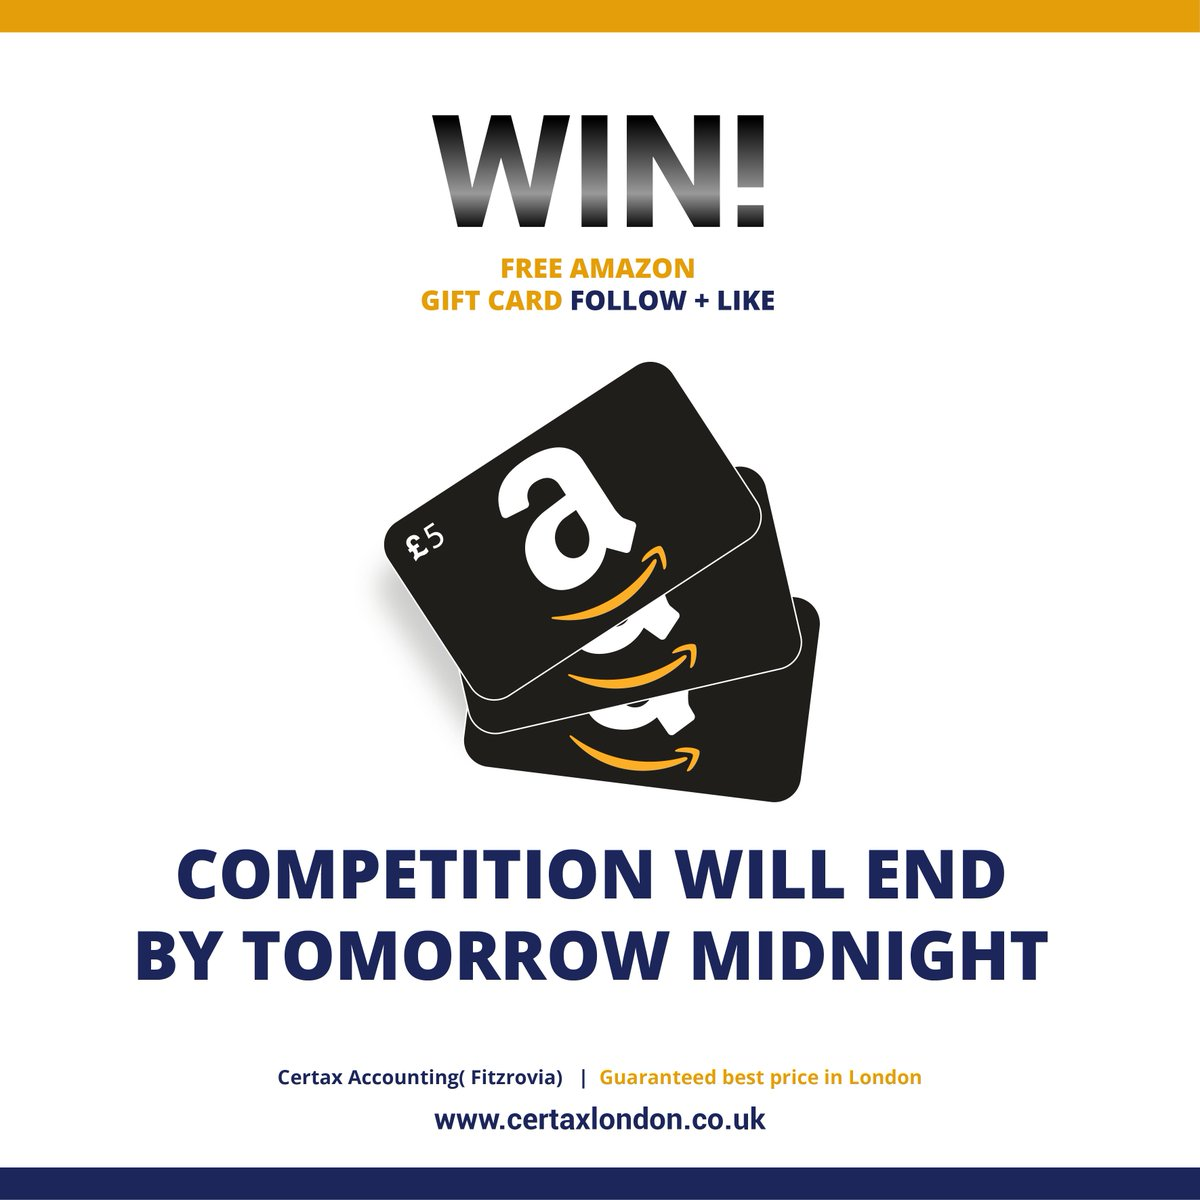 #FreebieFriday #giveaway #win a £5 #AmazonGiveaway #gift card #like + #retweet #follow End 12am 19/11 #prize #Competition #FridayFeeling #ff For Accounting Help Contact us:  https://www. certaxlondon.co.uk/contact-us/  &nbsp;  <br>http://pic.twitter.com/JzXceEht8K